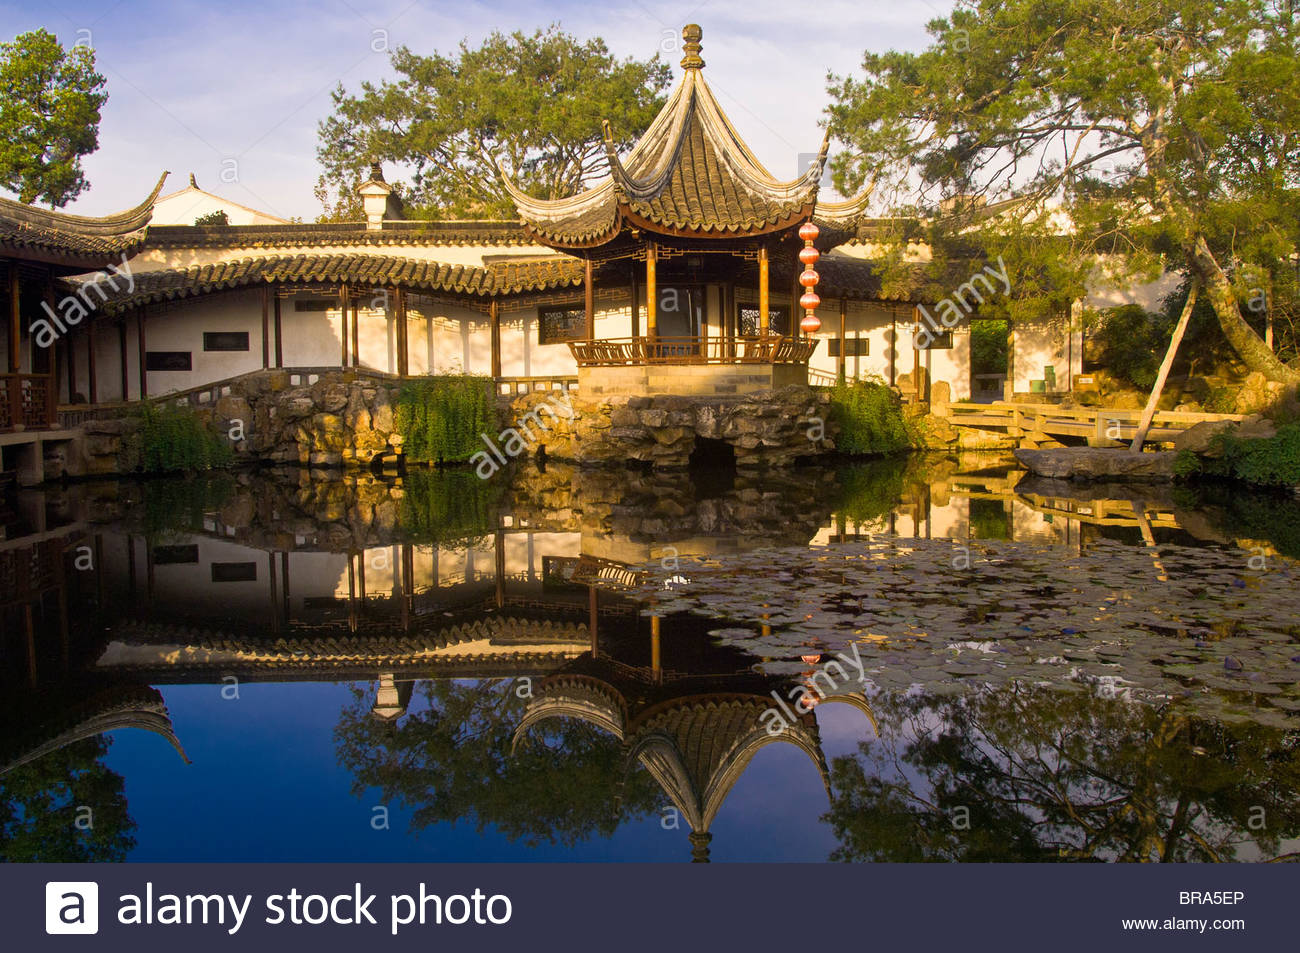 Master of Nets Garden, Suzhou, China Stock Photo: 31571310 - Alamy